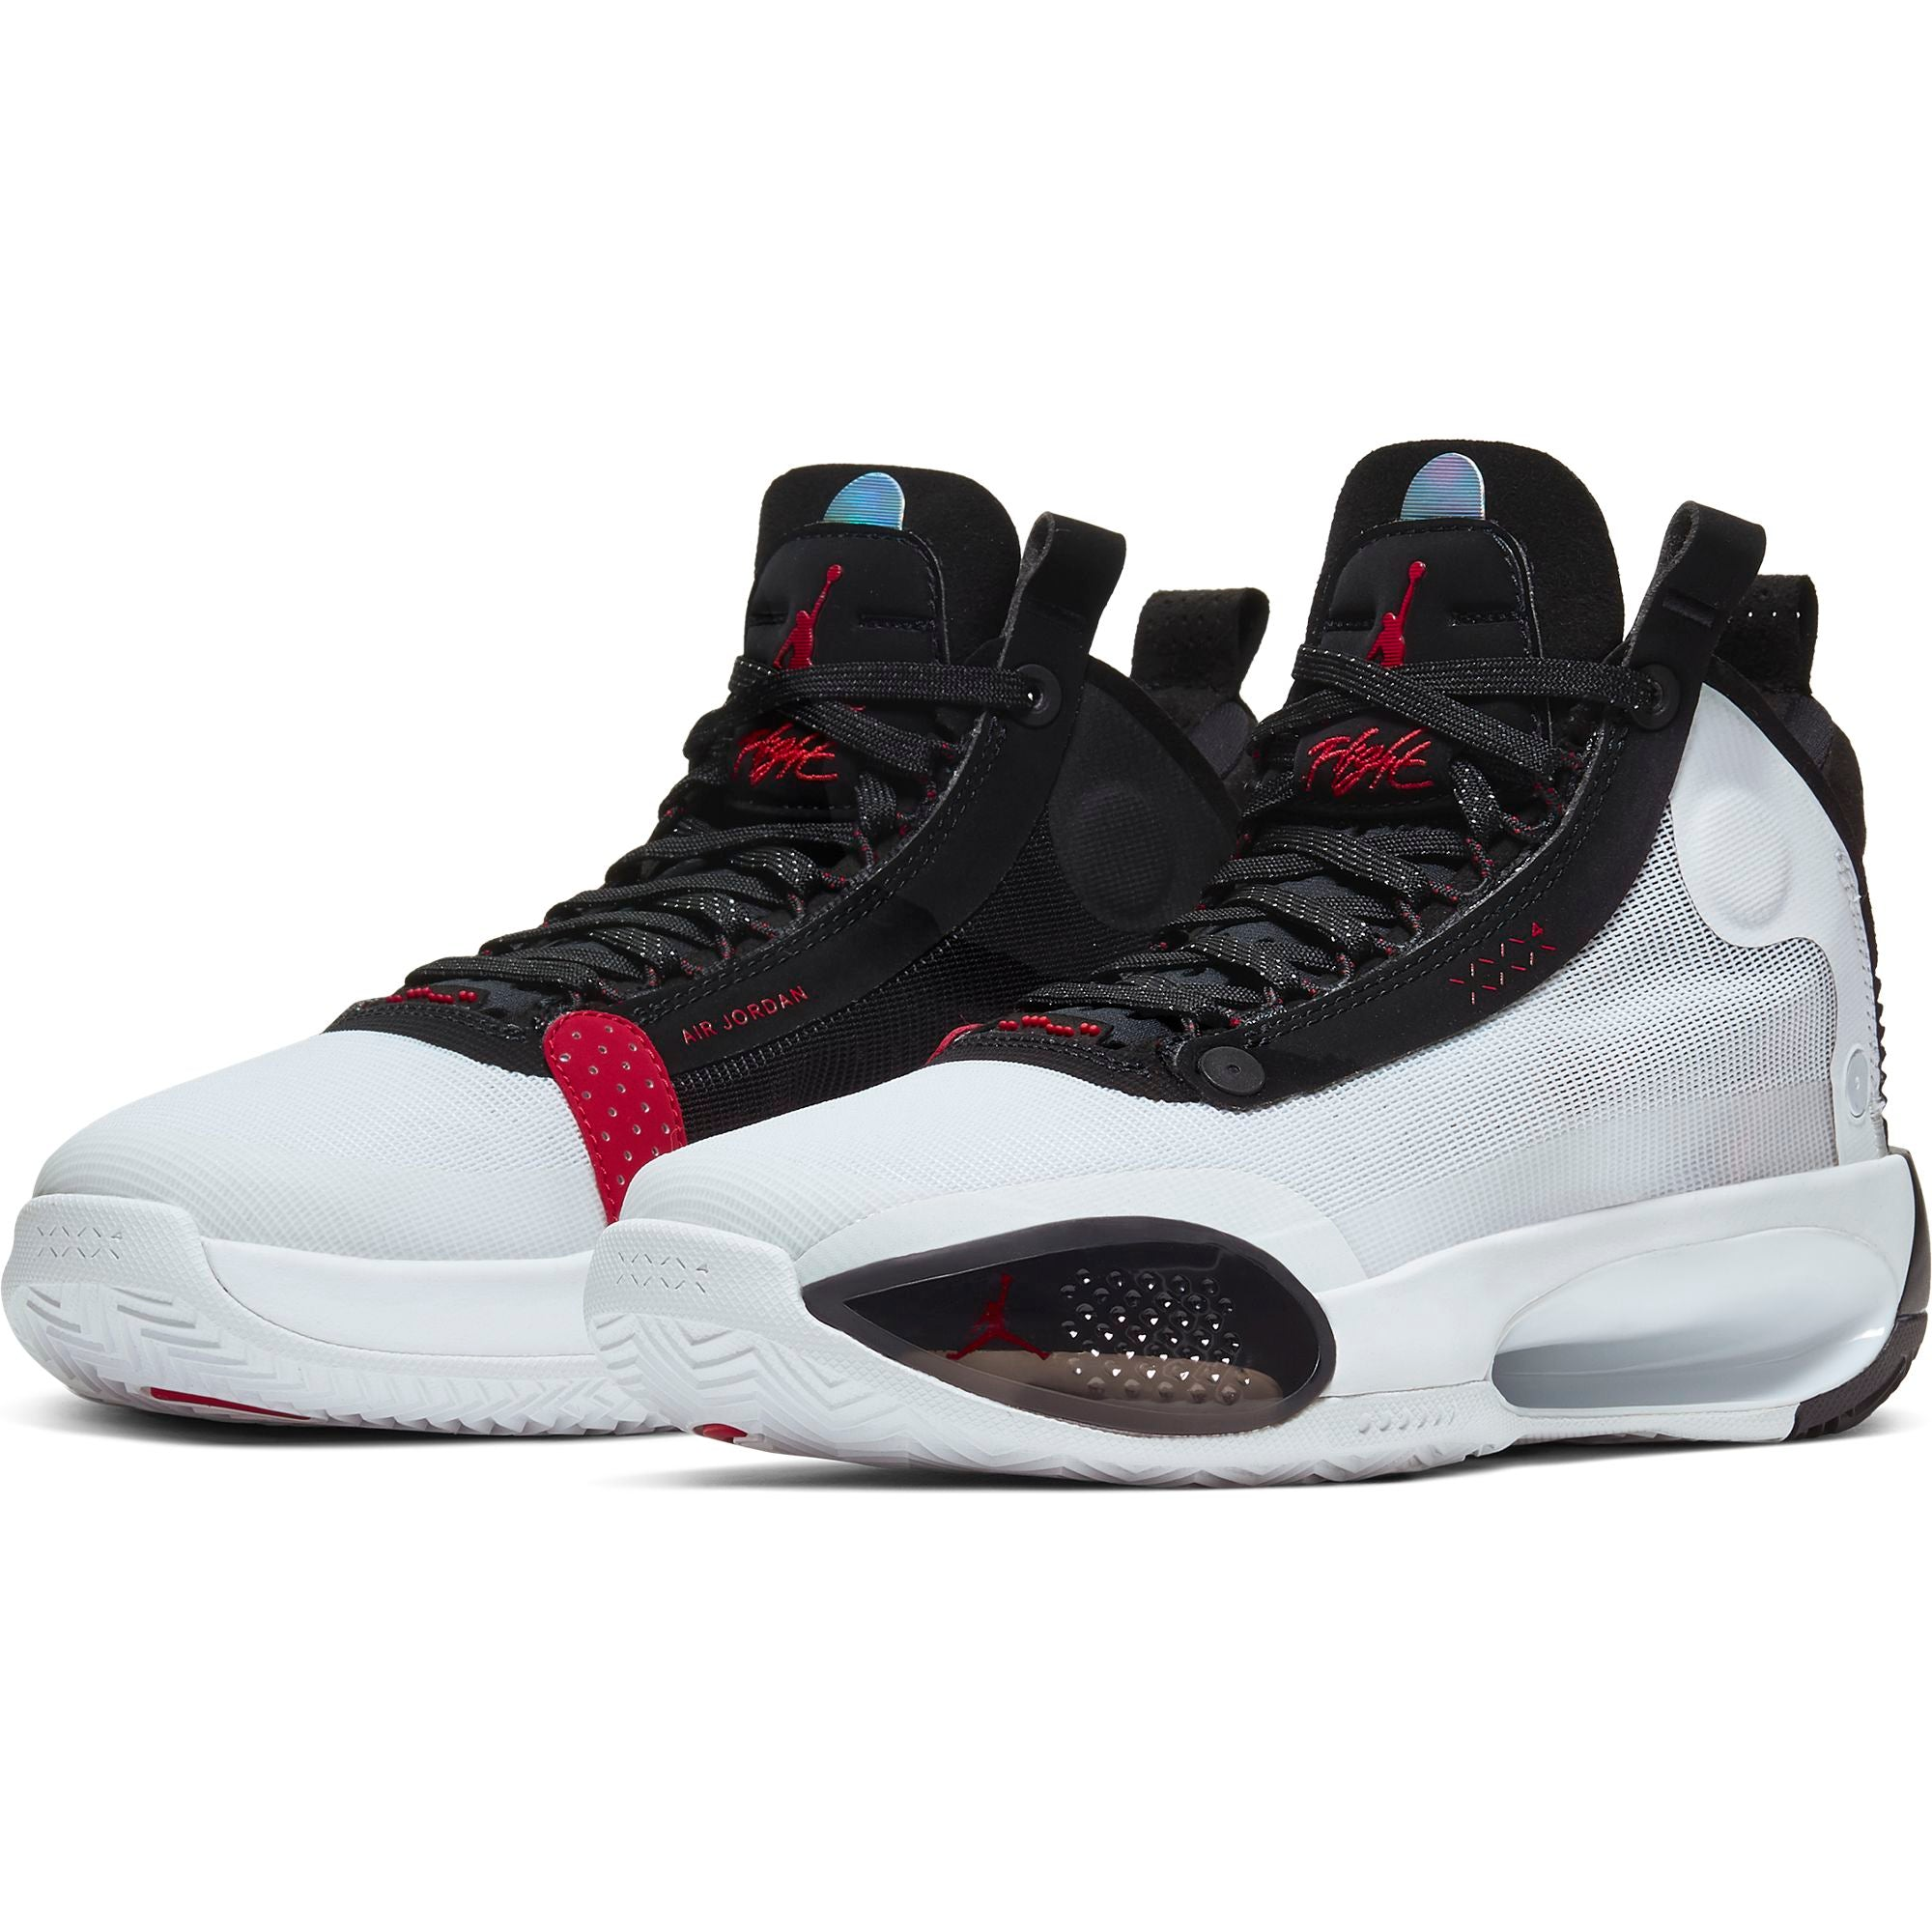 Nike Kids Jordan Air XXXIV Basketball Boot/shoe - White/University Red/Black